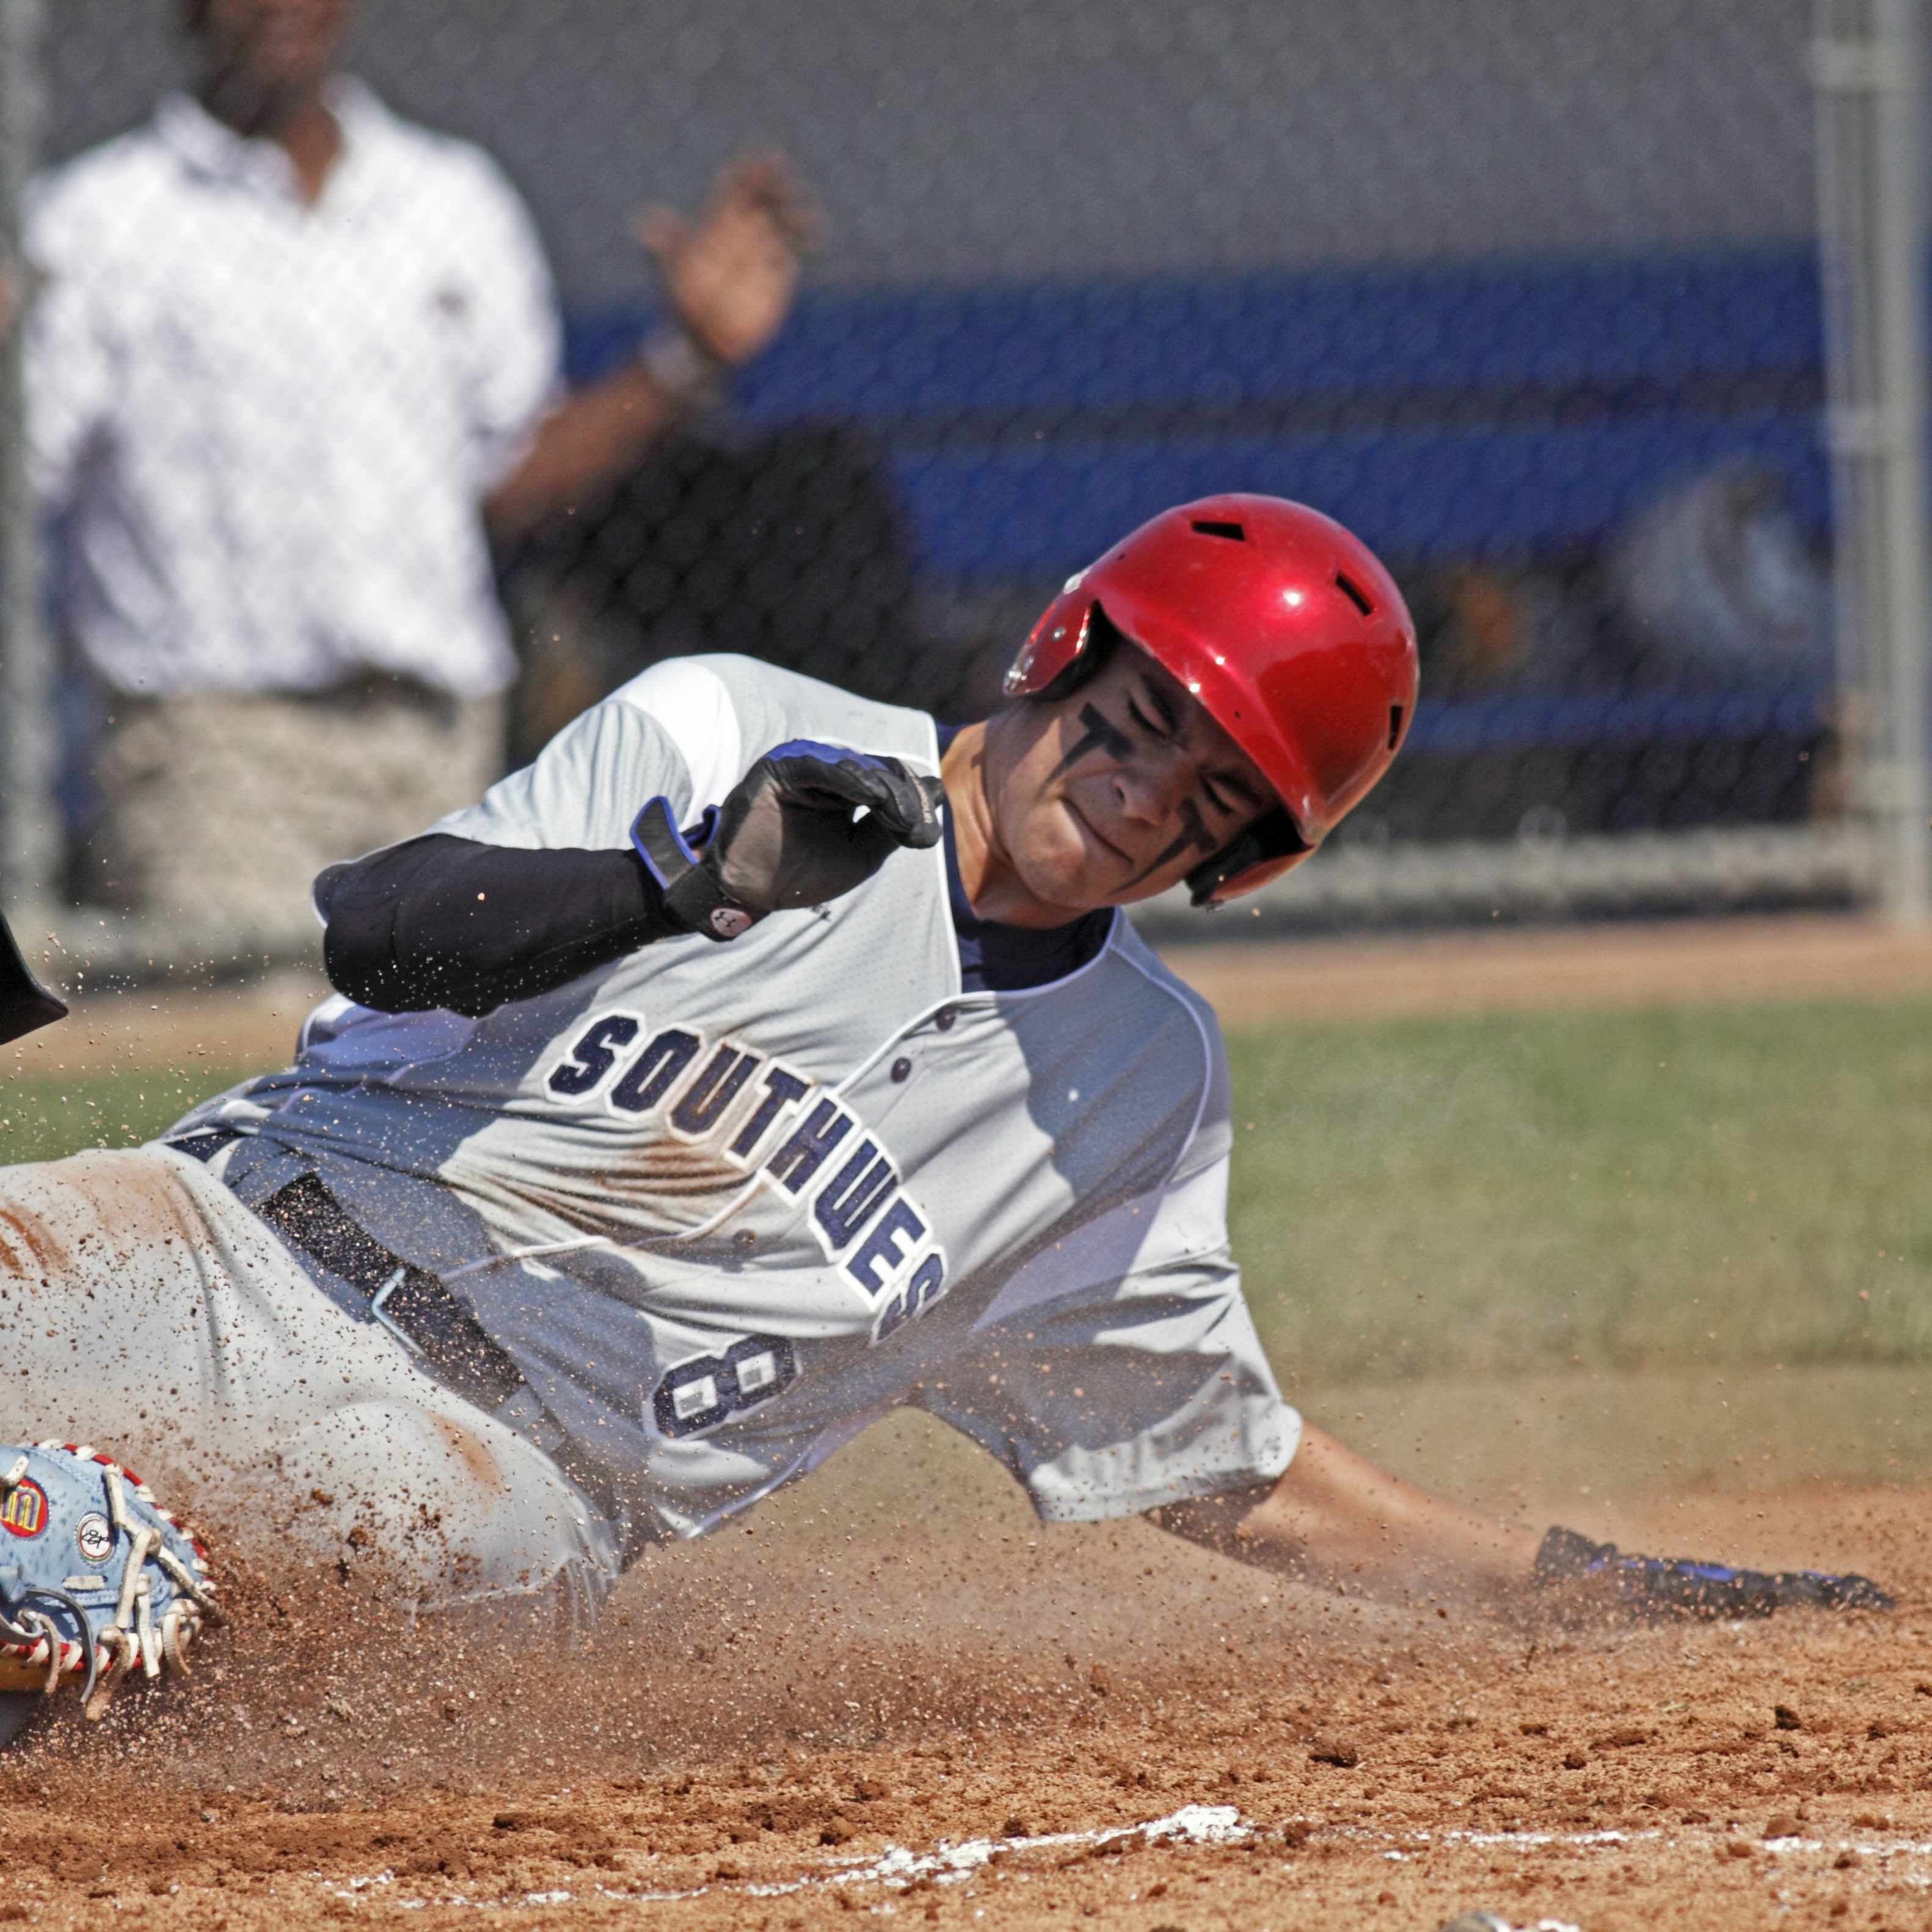 a baseball player sliding into a base on the field